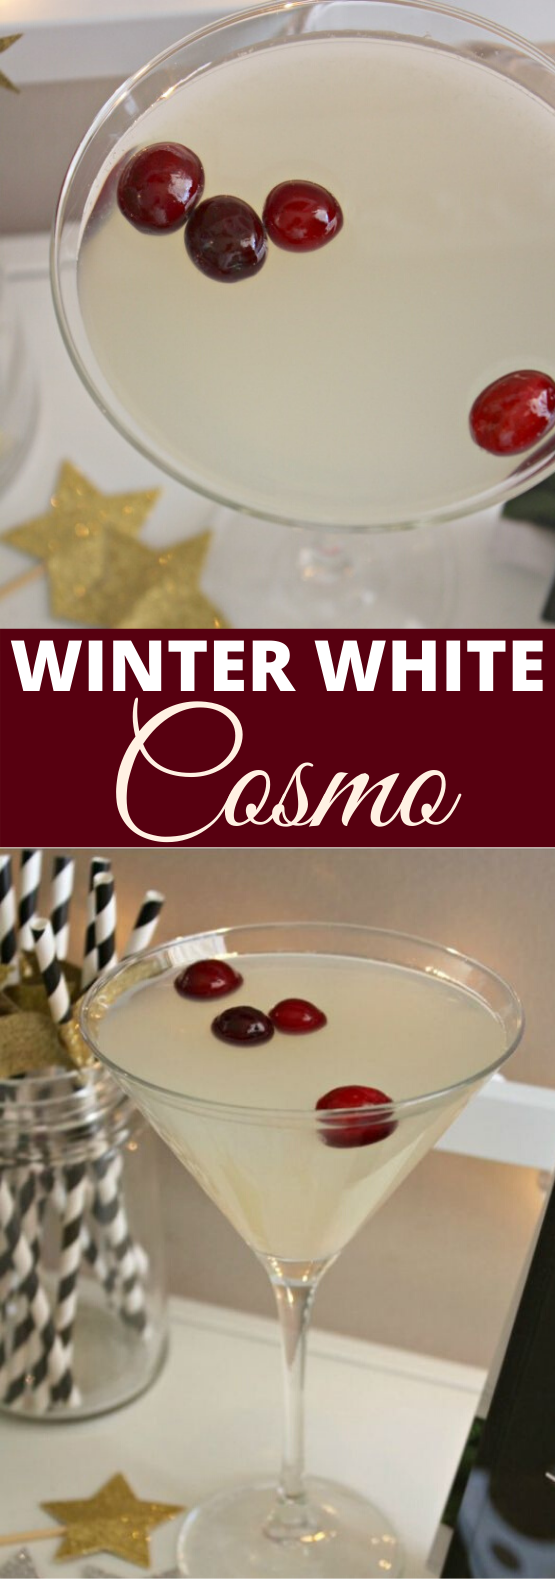 Winter White Cosmo #drink #cocktails #alcohol #christmas #party